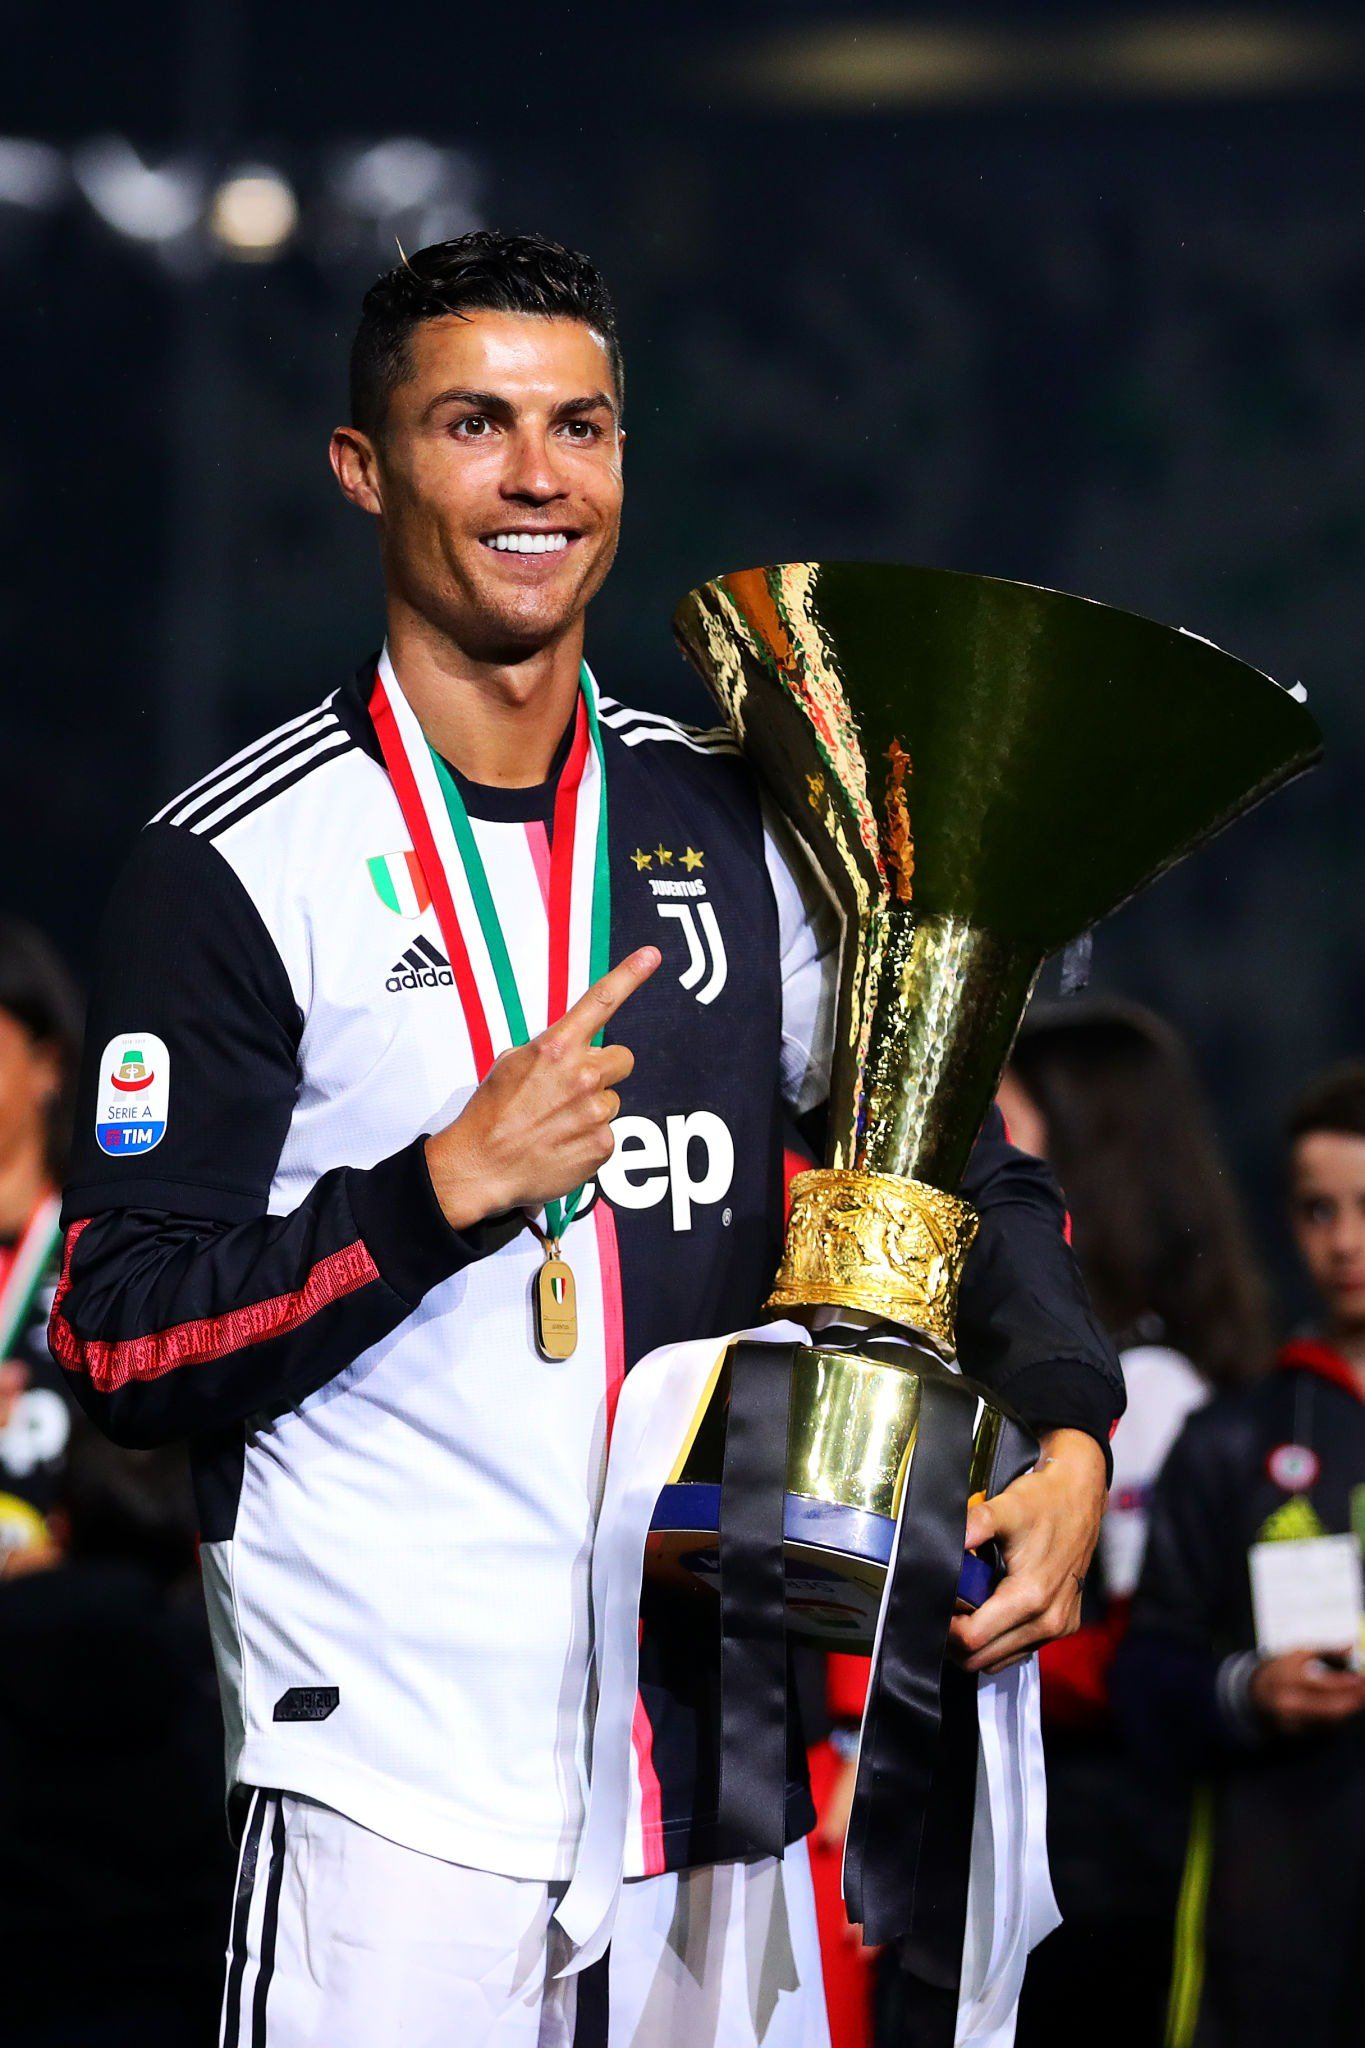 The first & only player to win the league titles in England, Spain & now Italy. https://t.co/3DMIkLIepl